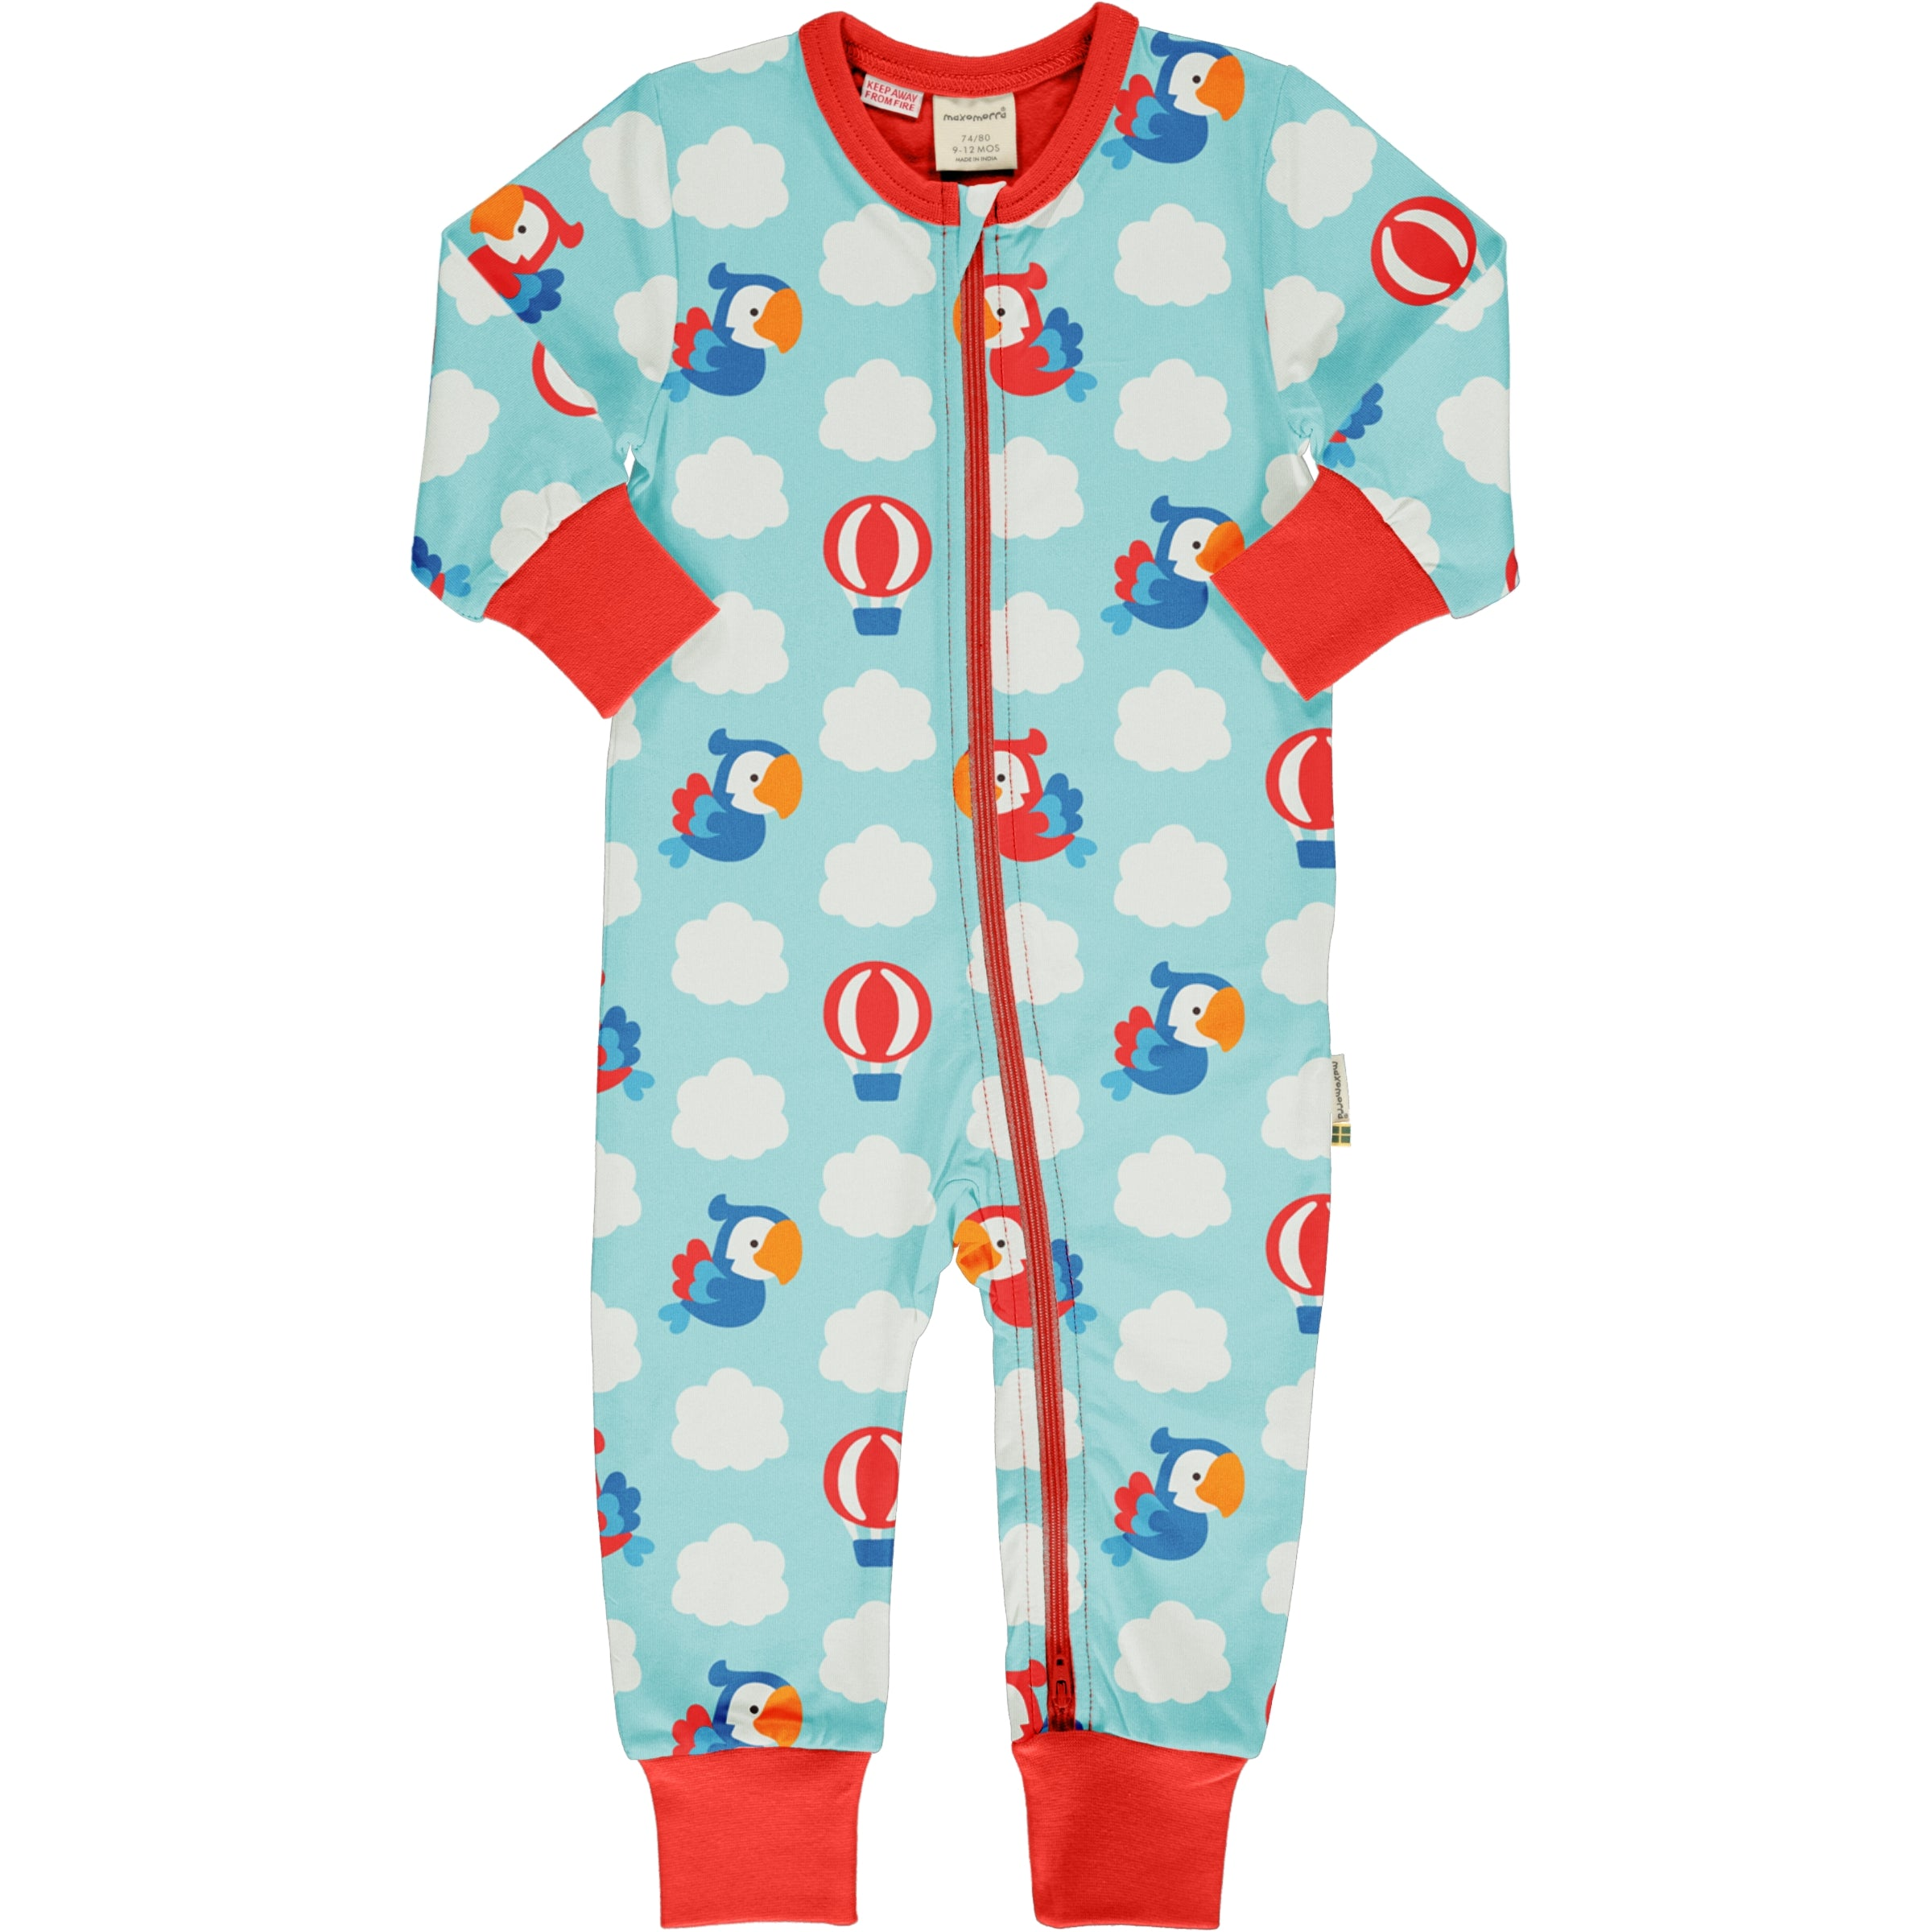 Maxomorra Rompersuit LS Parrot Safari,little-tiger-togs.